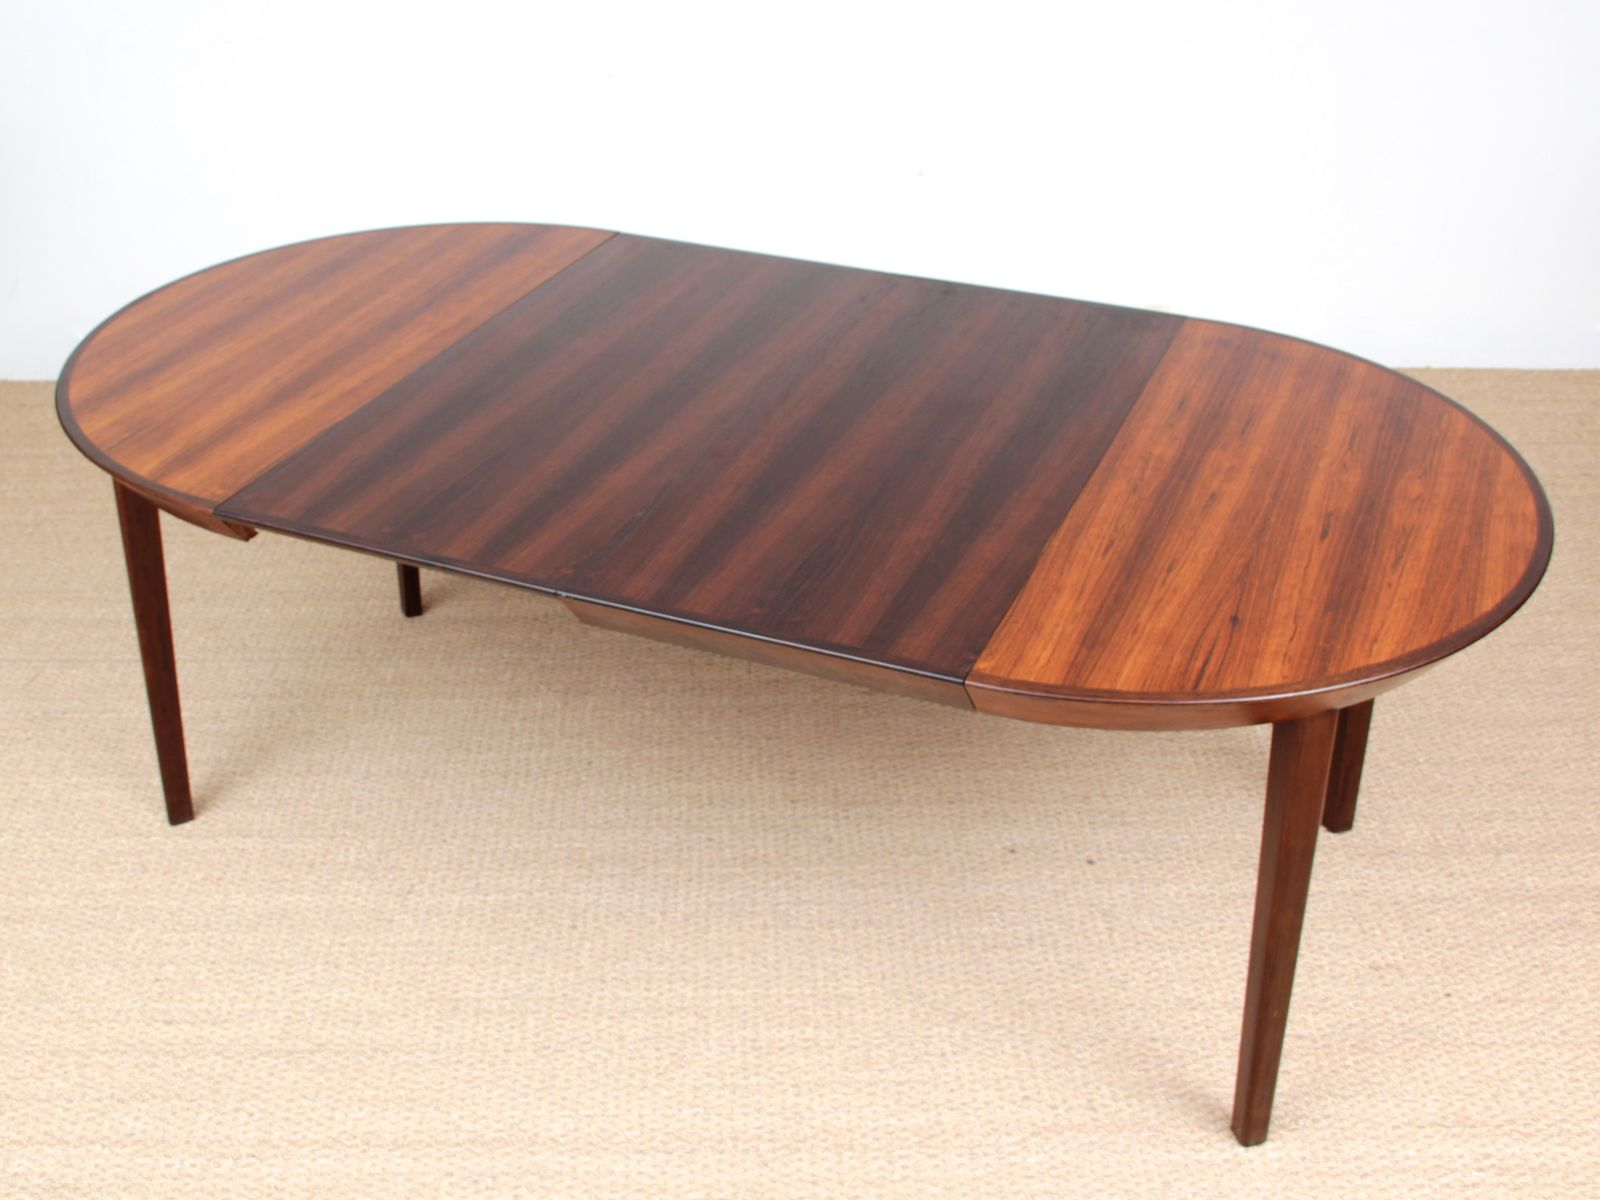 Round scandinavian rio rosewood dining table from gudme 1950s for sale at pamono - Dining table scandinavian ...